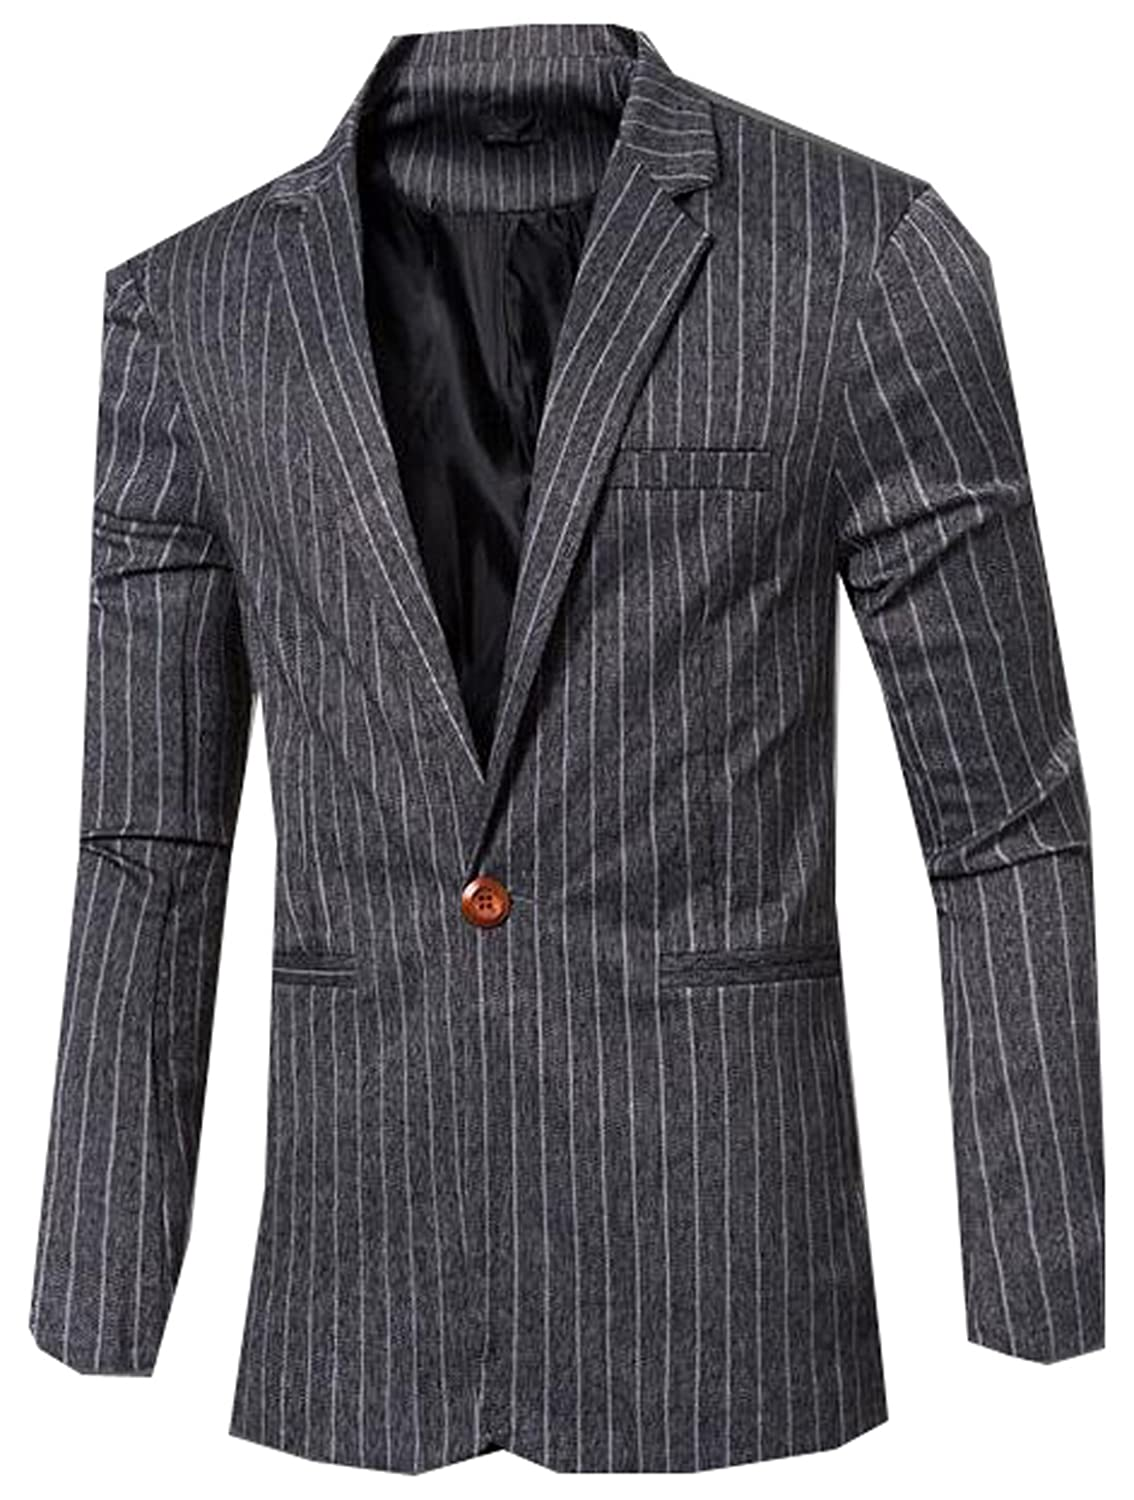 Generic Mens Fashion Slim Fit Lapel Stripe One Button Suit Jacket